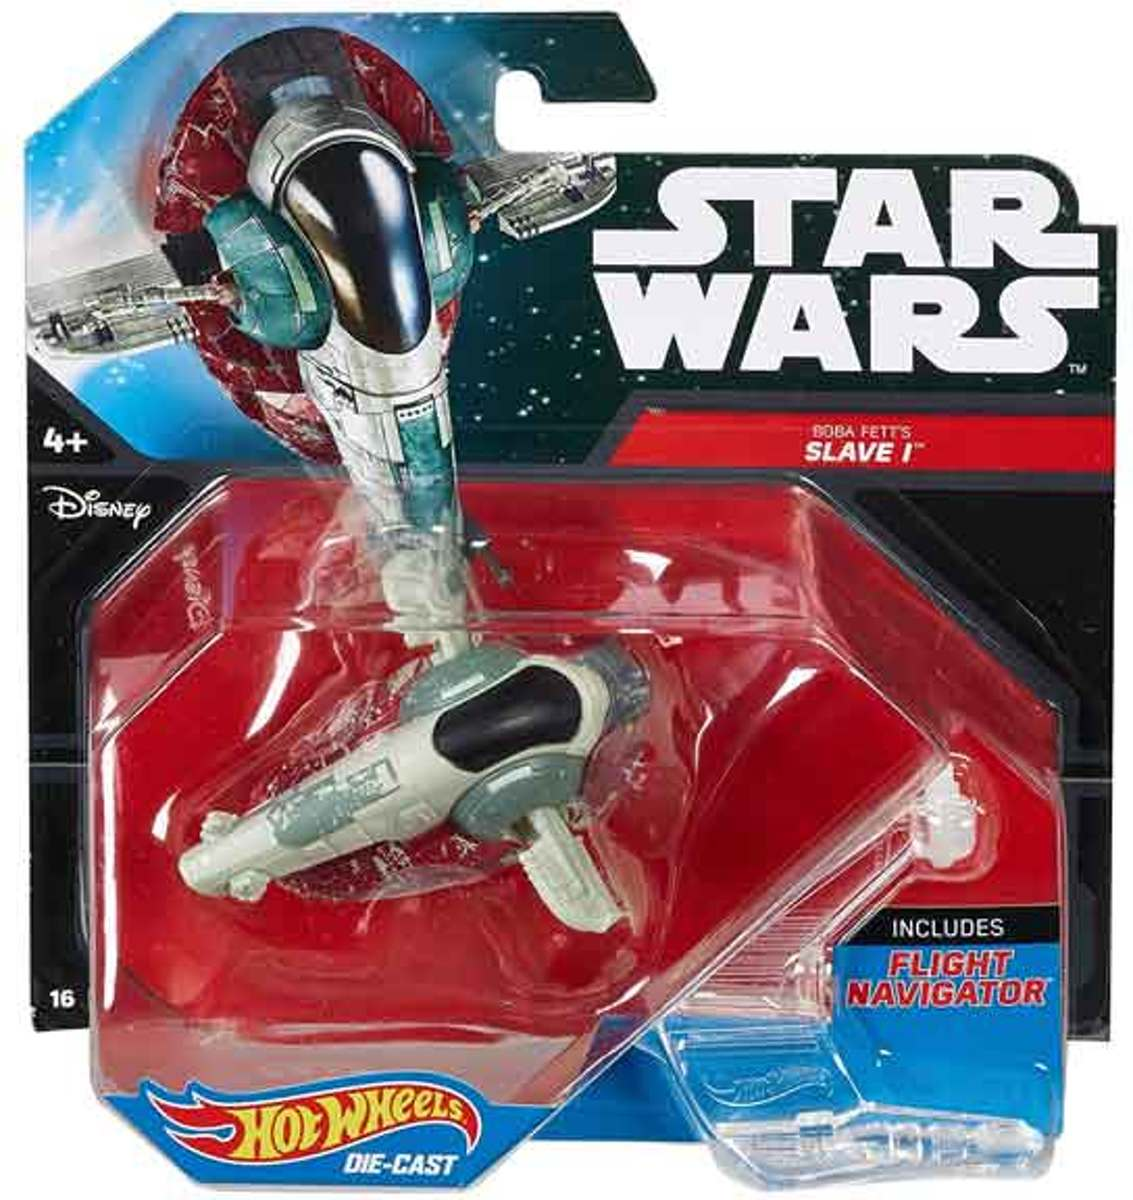 Hot wheels - Star wars - Boba fetts slave I